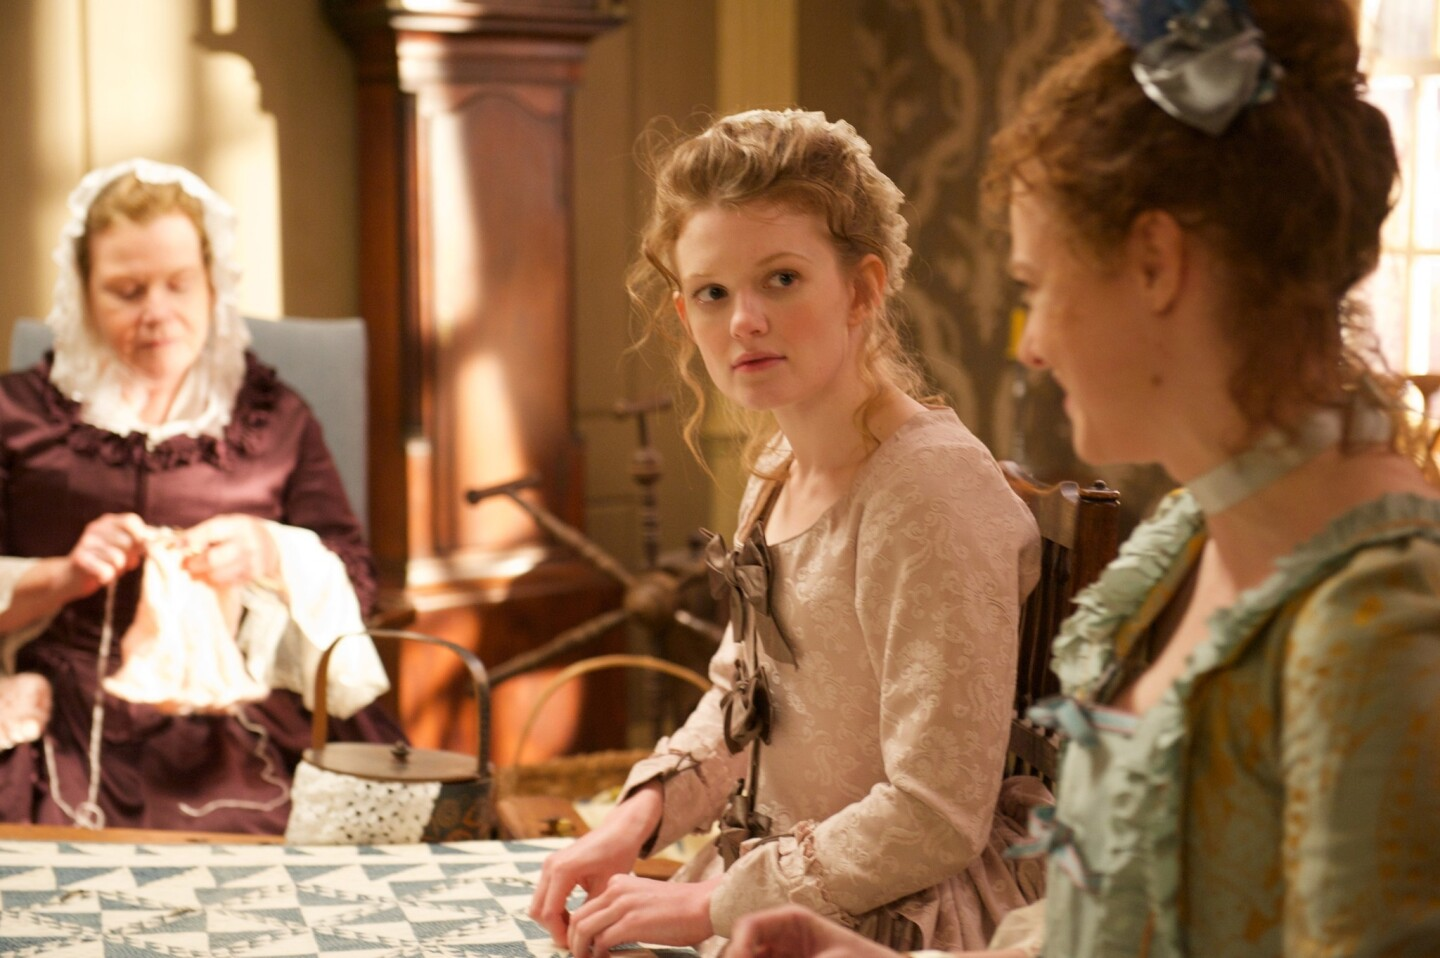 """Myra Turley as Lucy Scudder and Meegan Warner as Mary Woodhull. Premiering April 6, """"Turn"""" focuses on a conflict in American history that continues to reverberate politically but has failed to captivate the popular imagination in the same way as the Civil War or World War II. """"Turn"""" arrives at a moment of transition for AMC. After the end of """"Breaking Bad"""" and with """"Mad Men"""" entering its final season next month, the question now is whether the network can maintain its reputation for top-notch, culture-shifting drama."""